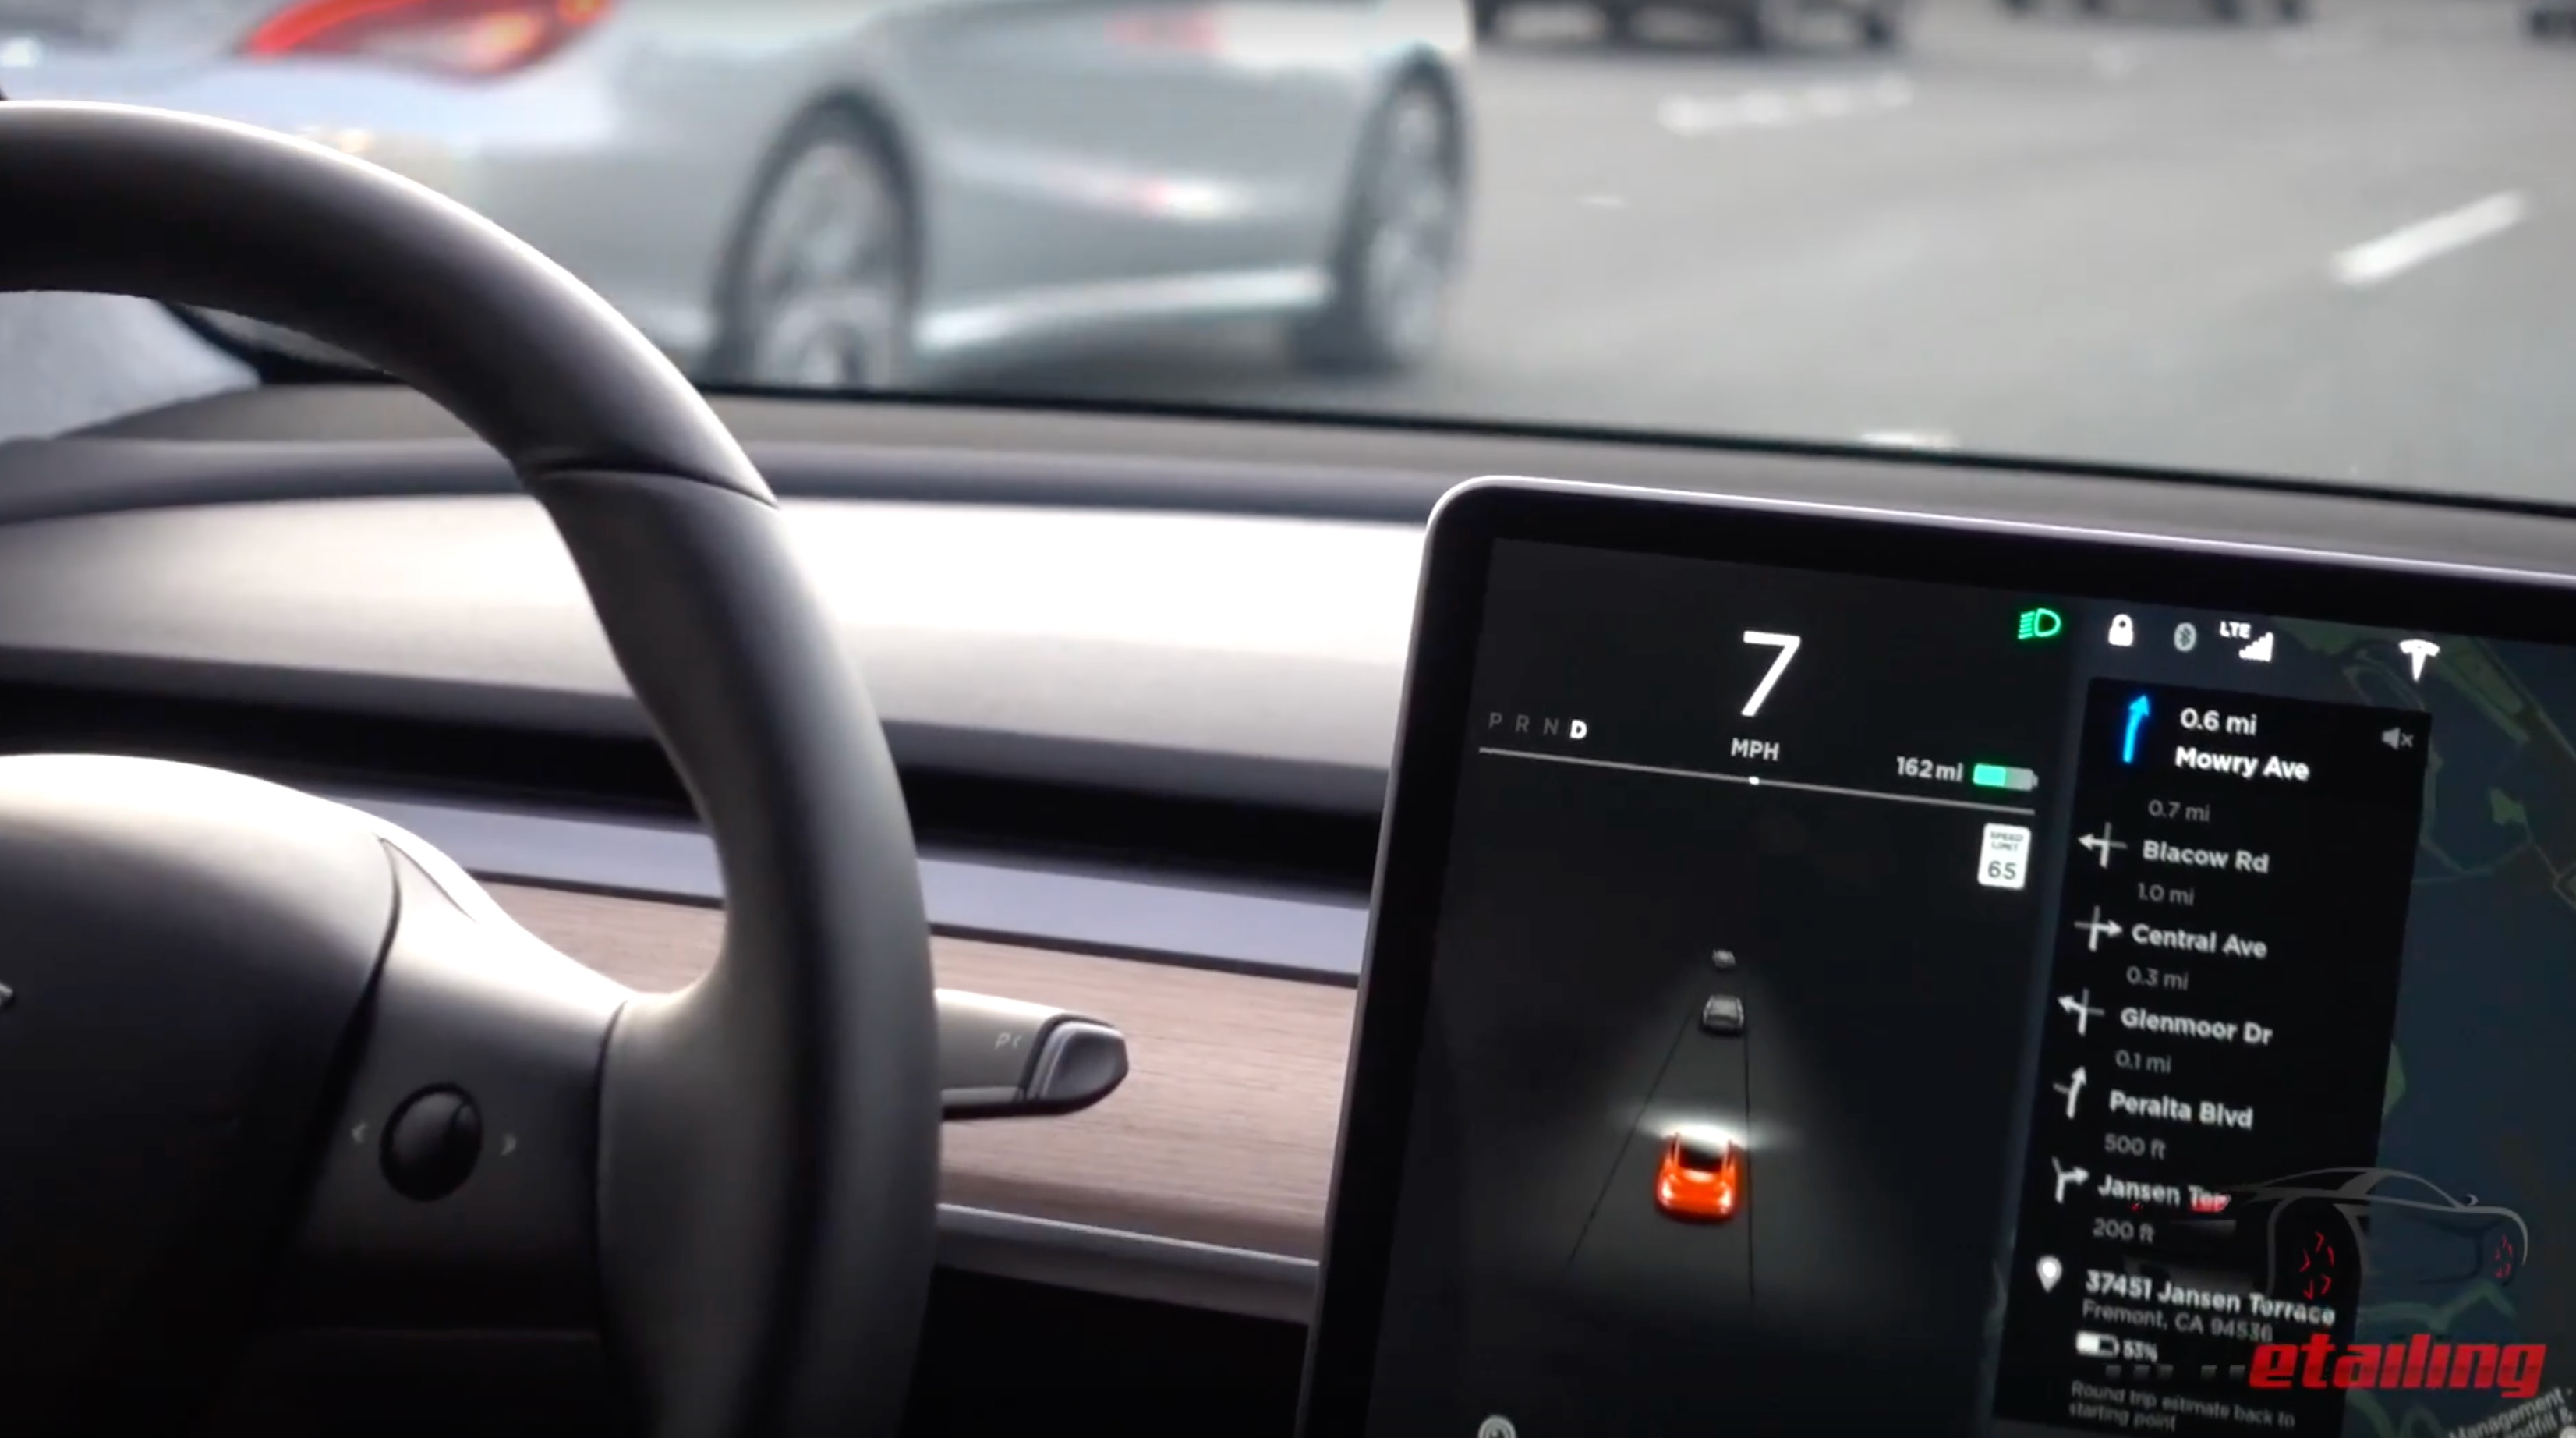 tesla-model-3-autopilot-tacc-user-interface